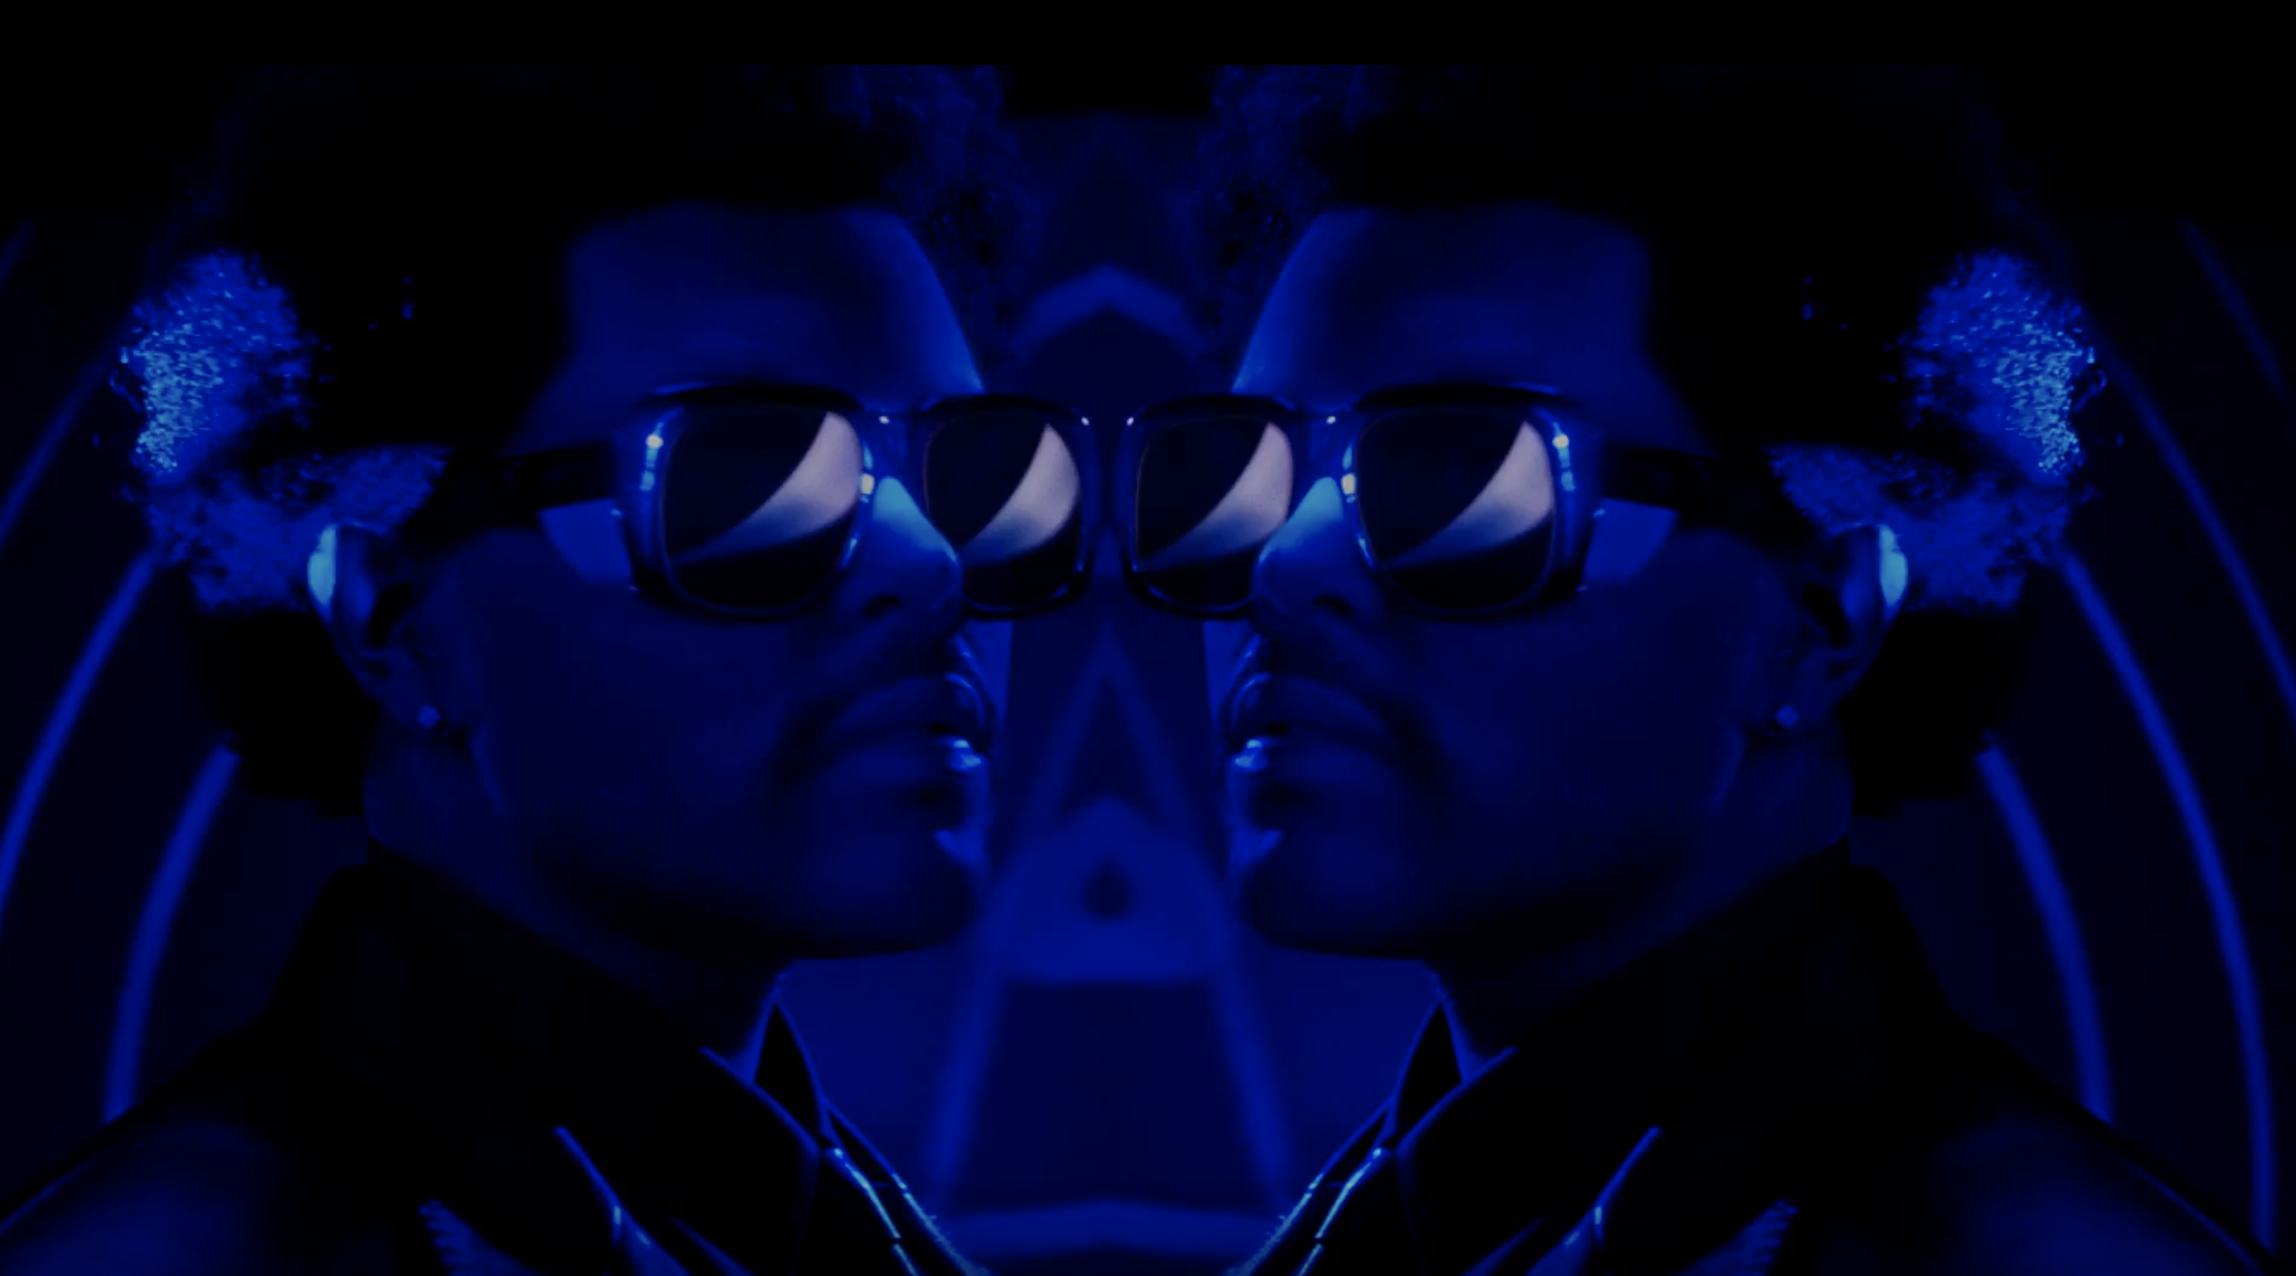 It S Official The Weeknd Will Perform At The 2021 Super Bowl Halftime Show The Weeknd Super Bowl Singer